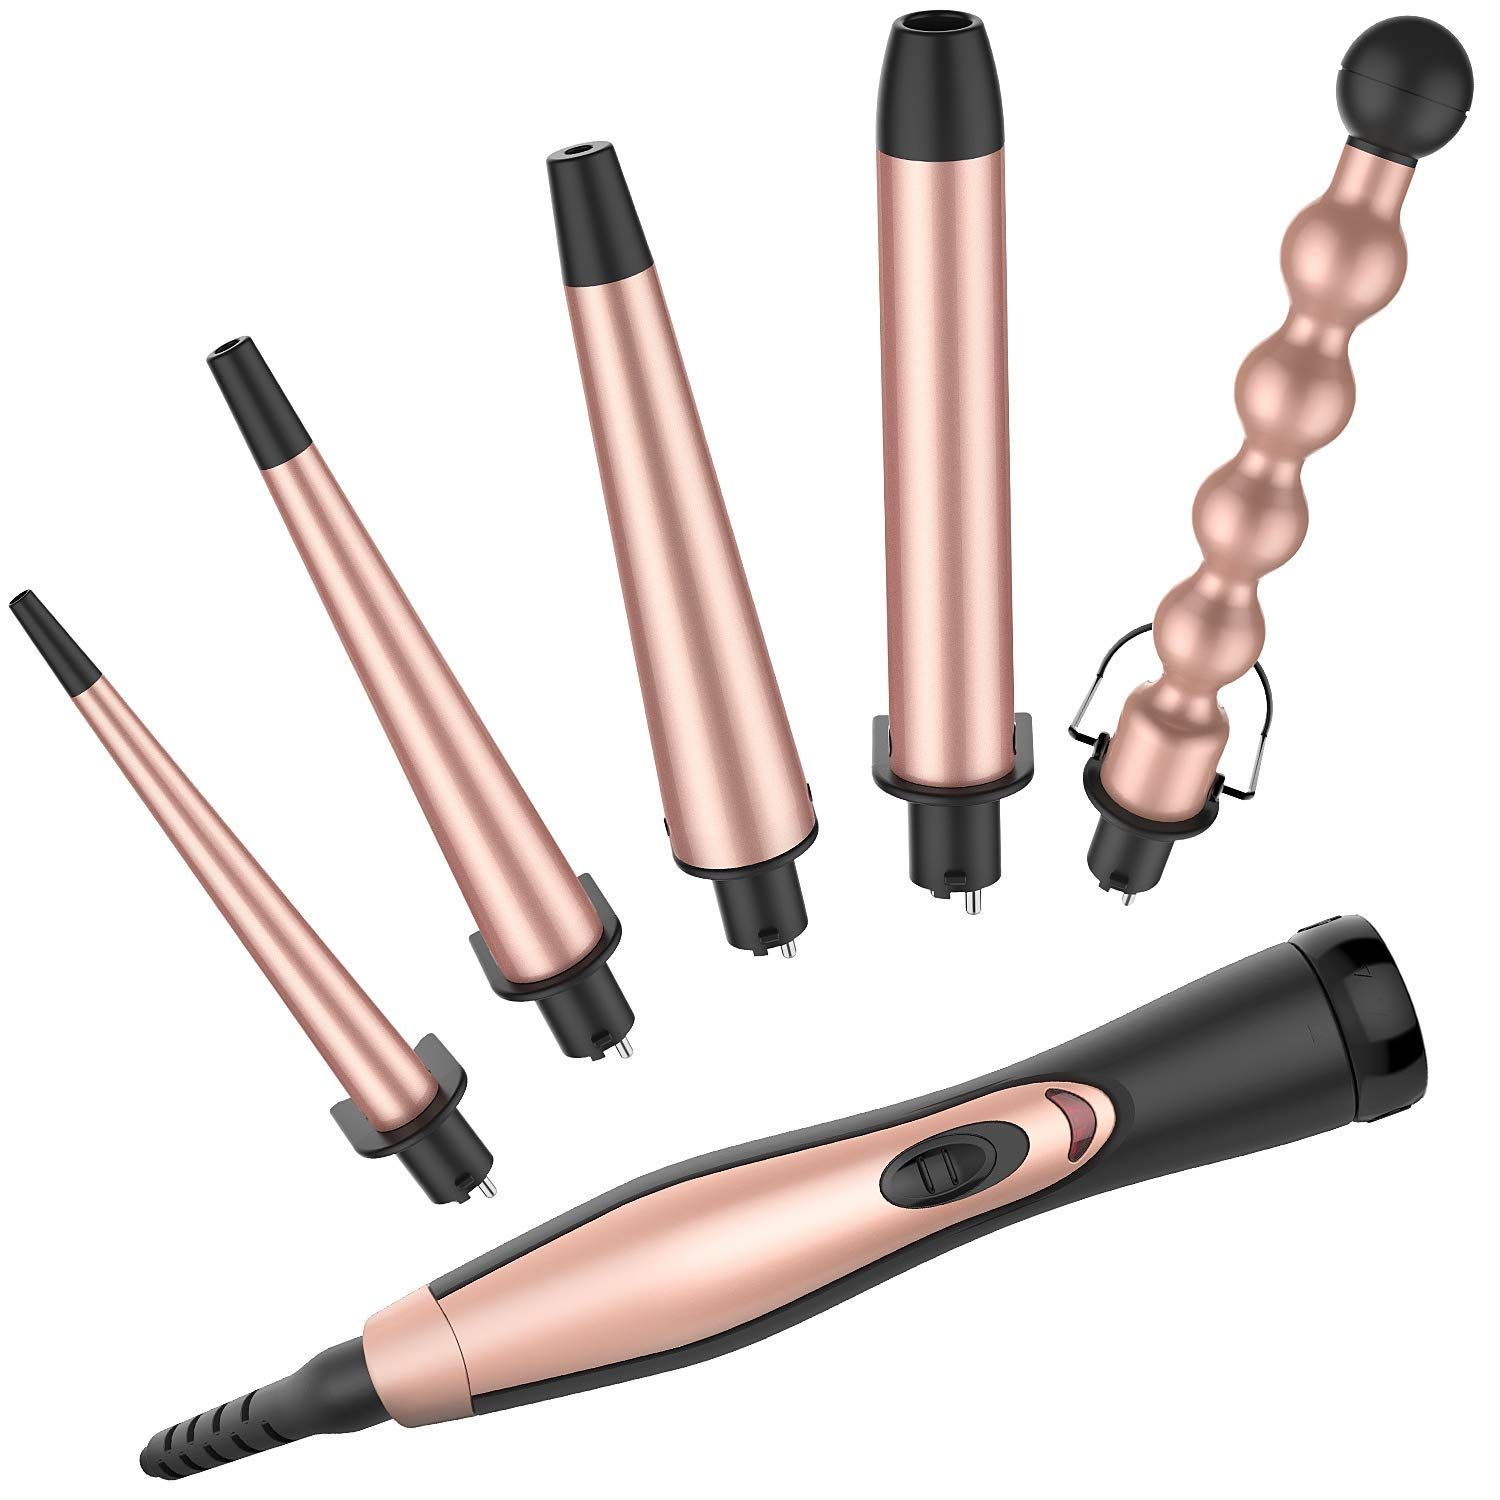 Bestope 5 In 1 Professional Curling Iron Wand Set With 5 Interchangeable Ceramic Barrels 0 35 To1 25 And Heat Protective Glove Curling Wand Set Curling Hair With Wand Best Curling Wands